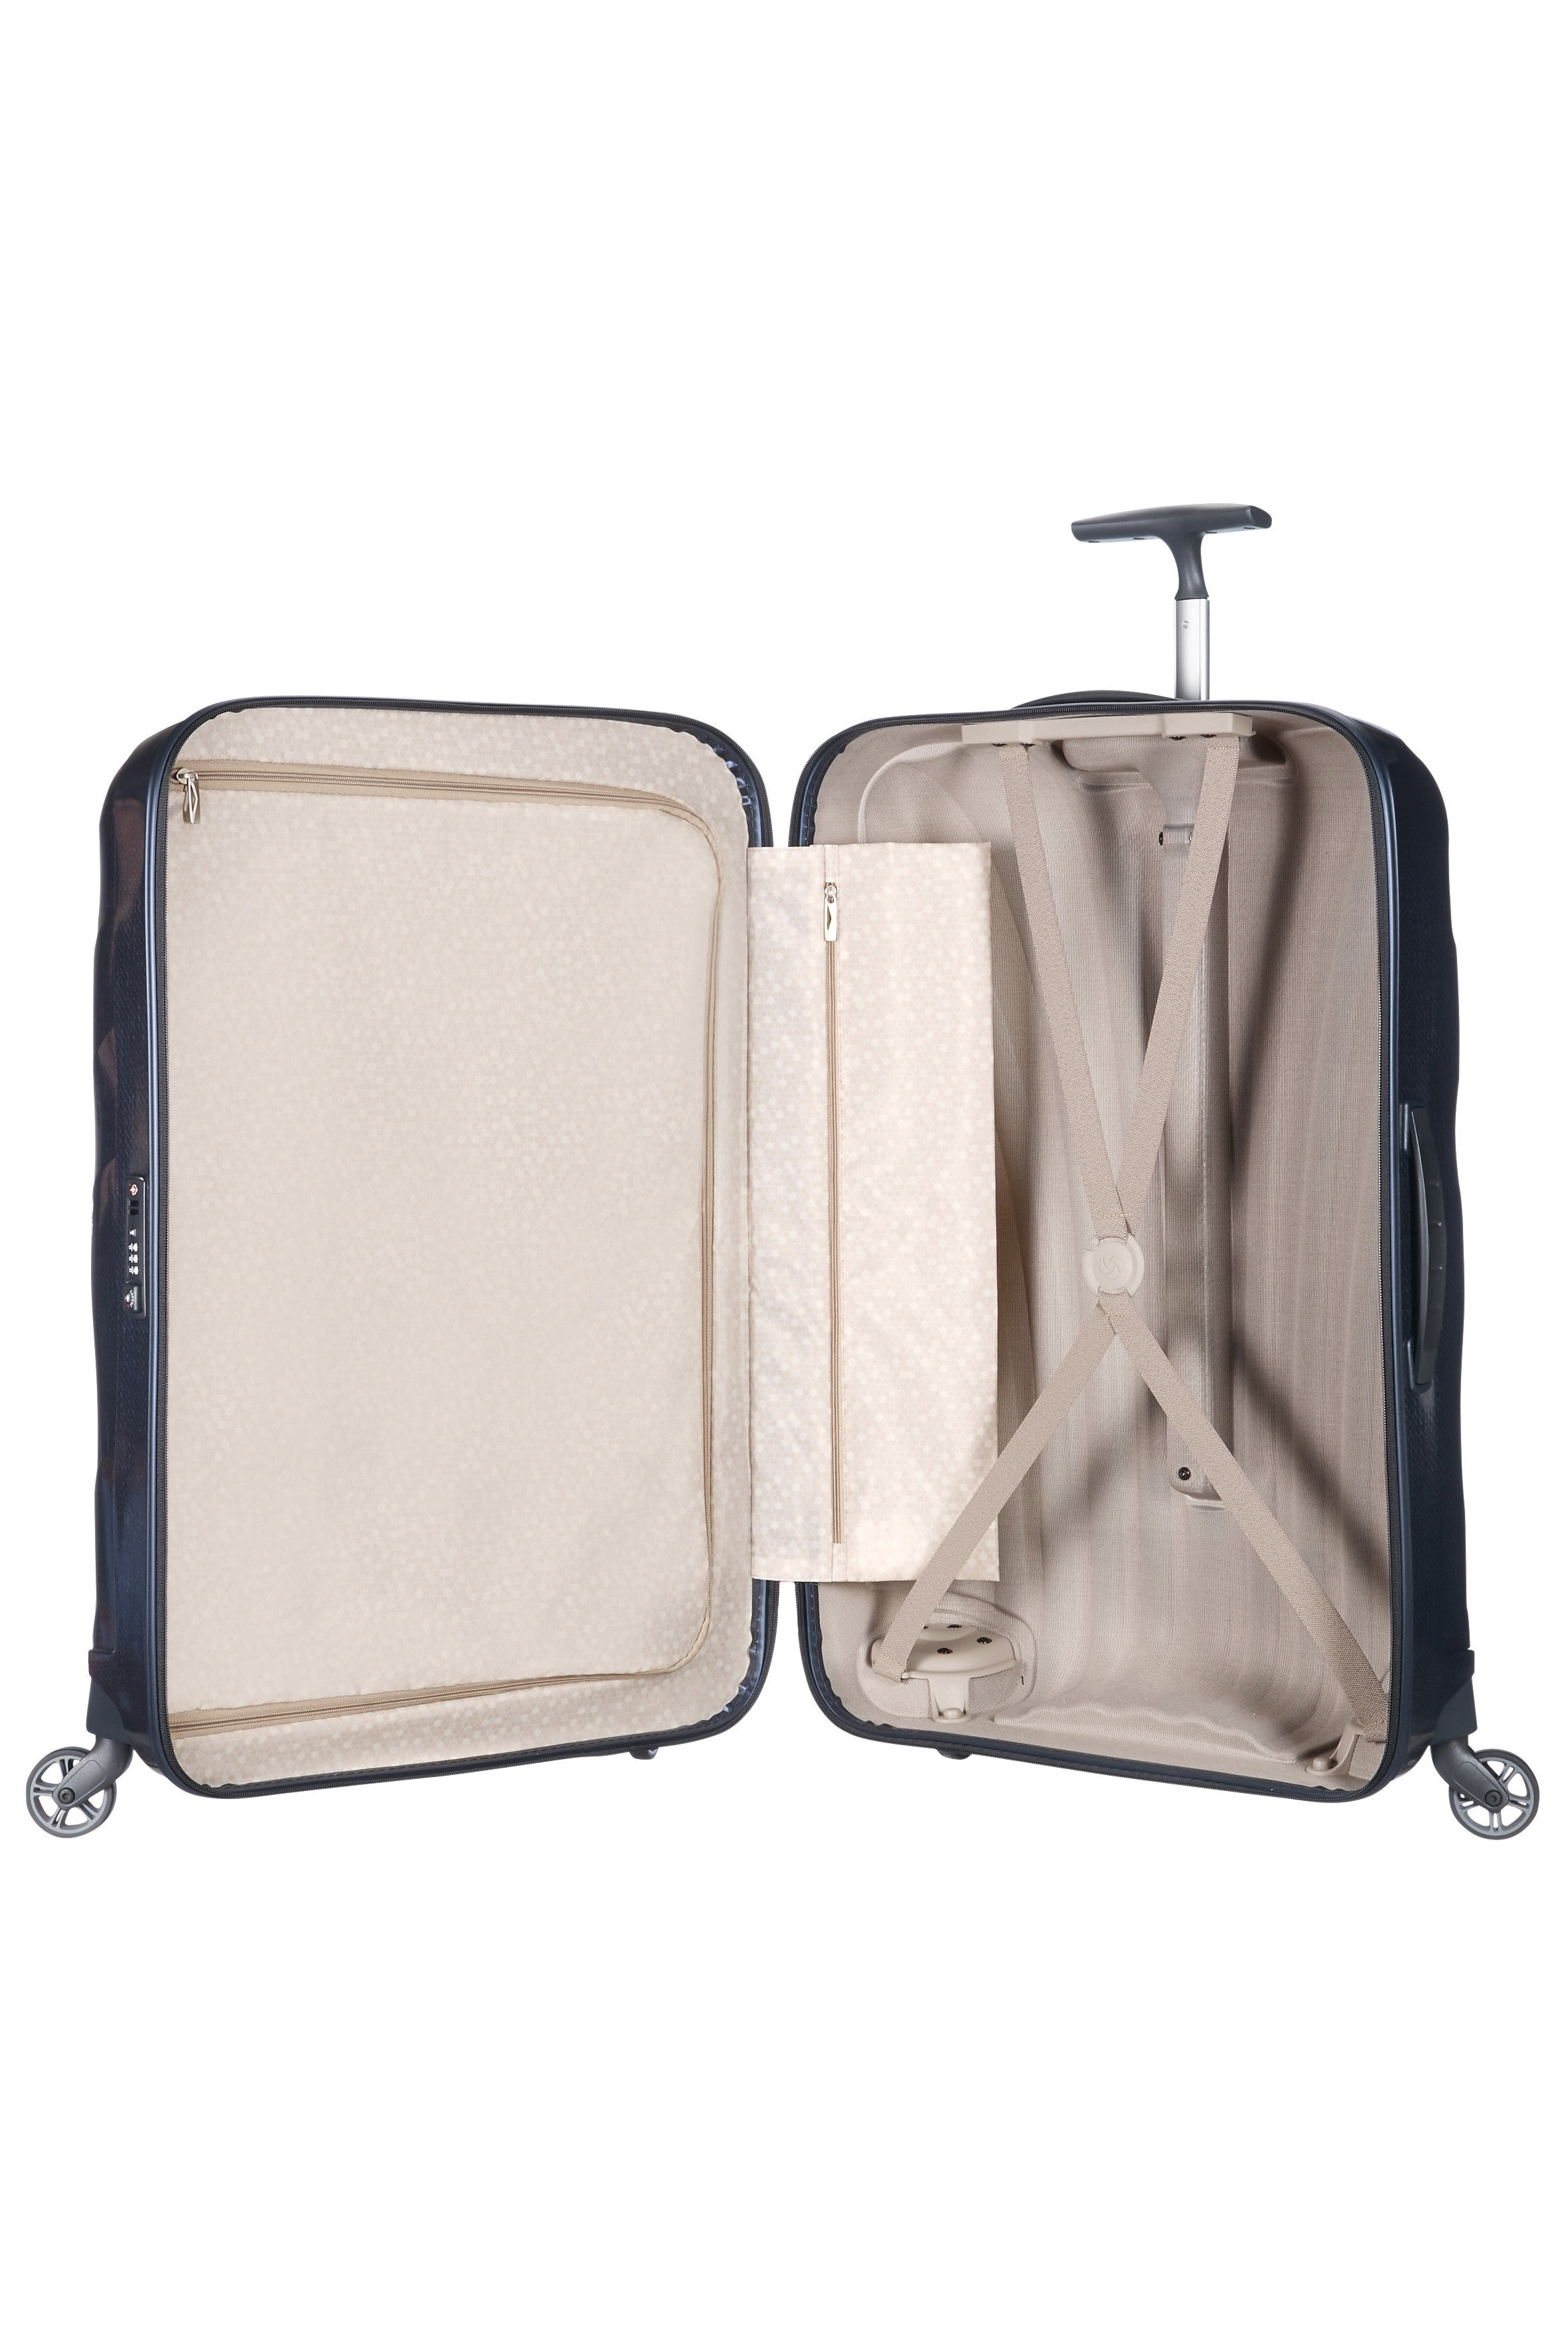 Samsonite Cosmolite Spinner 86cm Midnight Blue